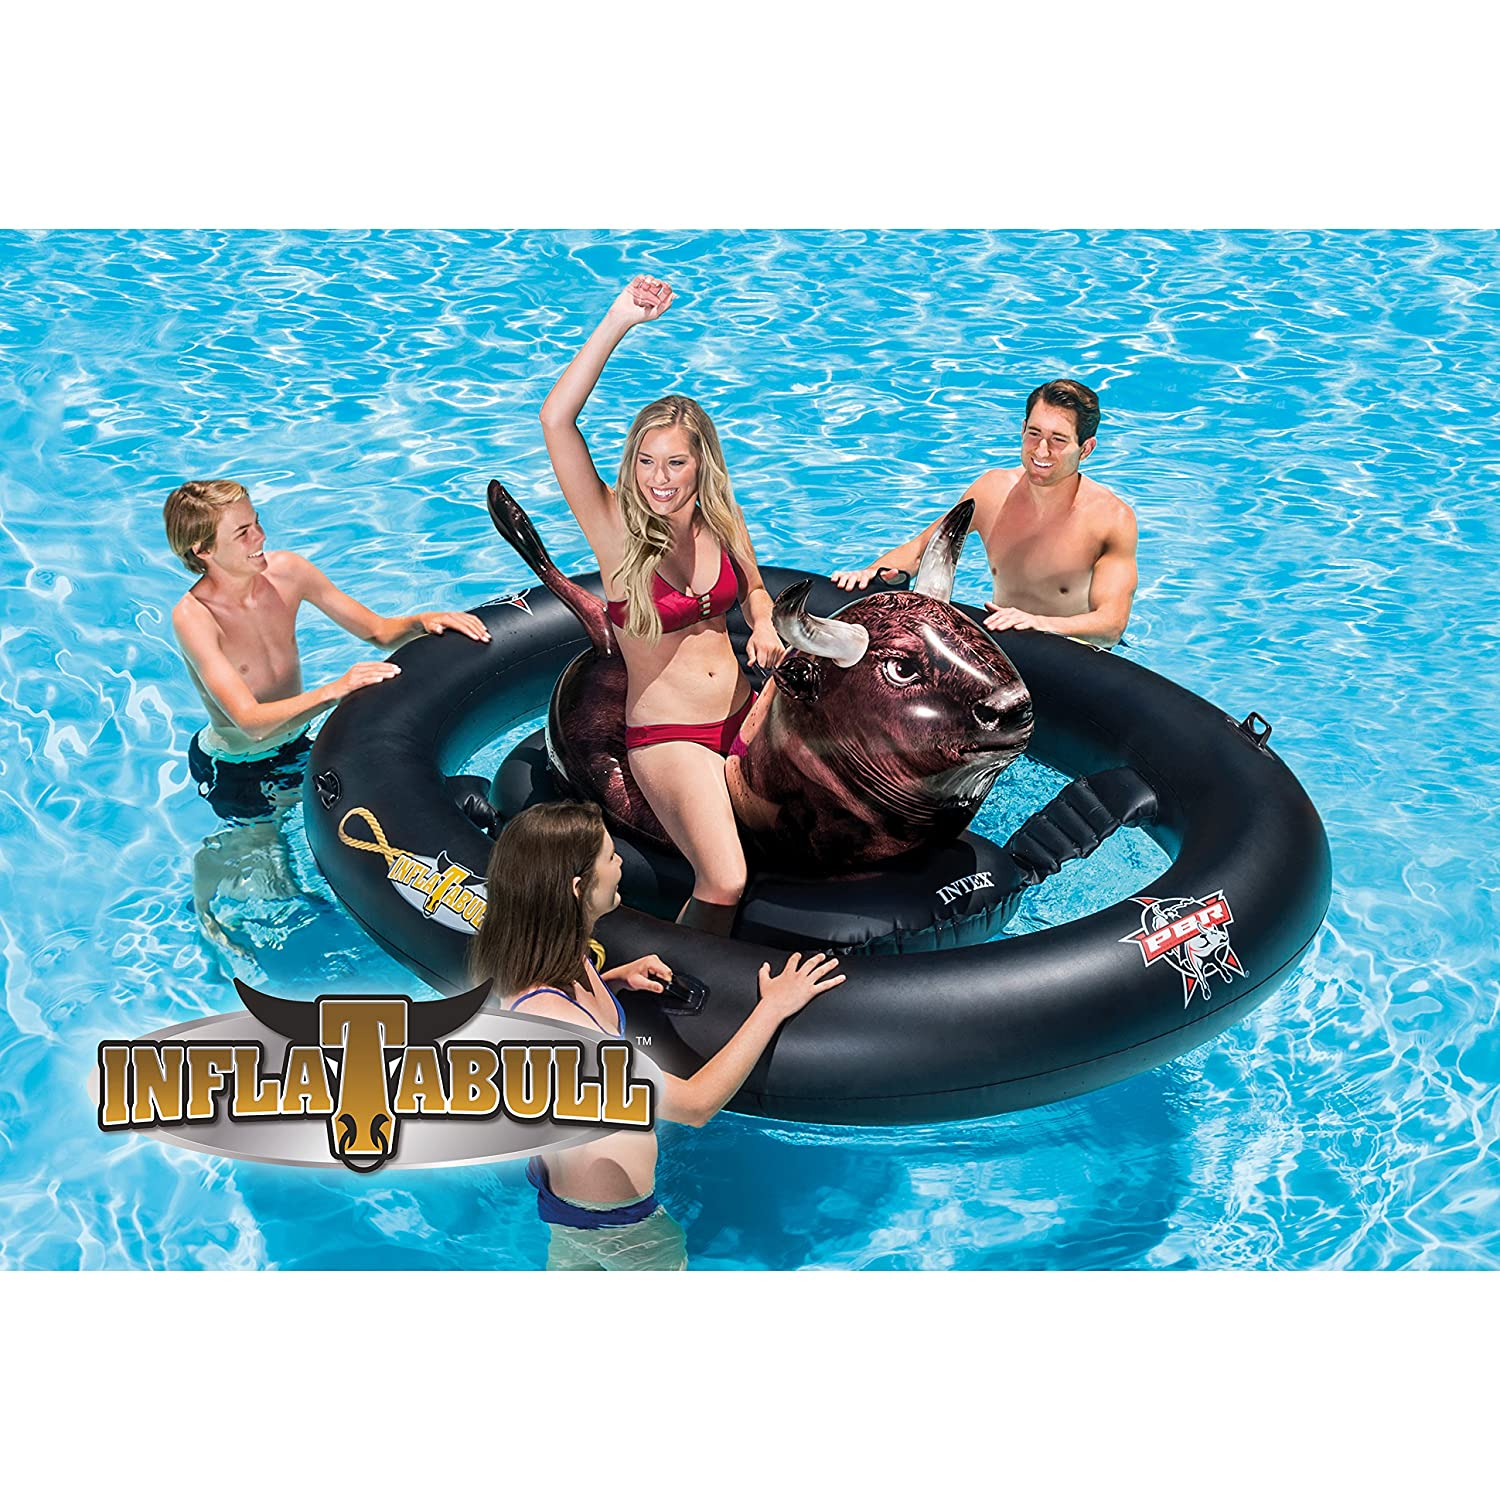 INTEX inflat-a-Bull, Inflable Ride-on Piscina de Juguete con la ...